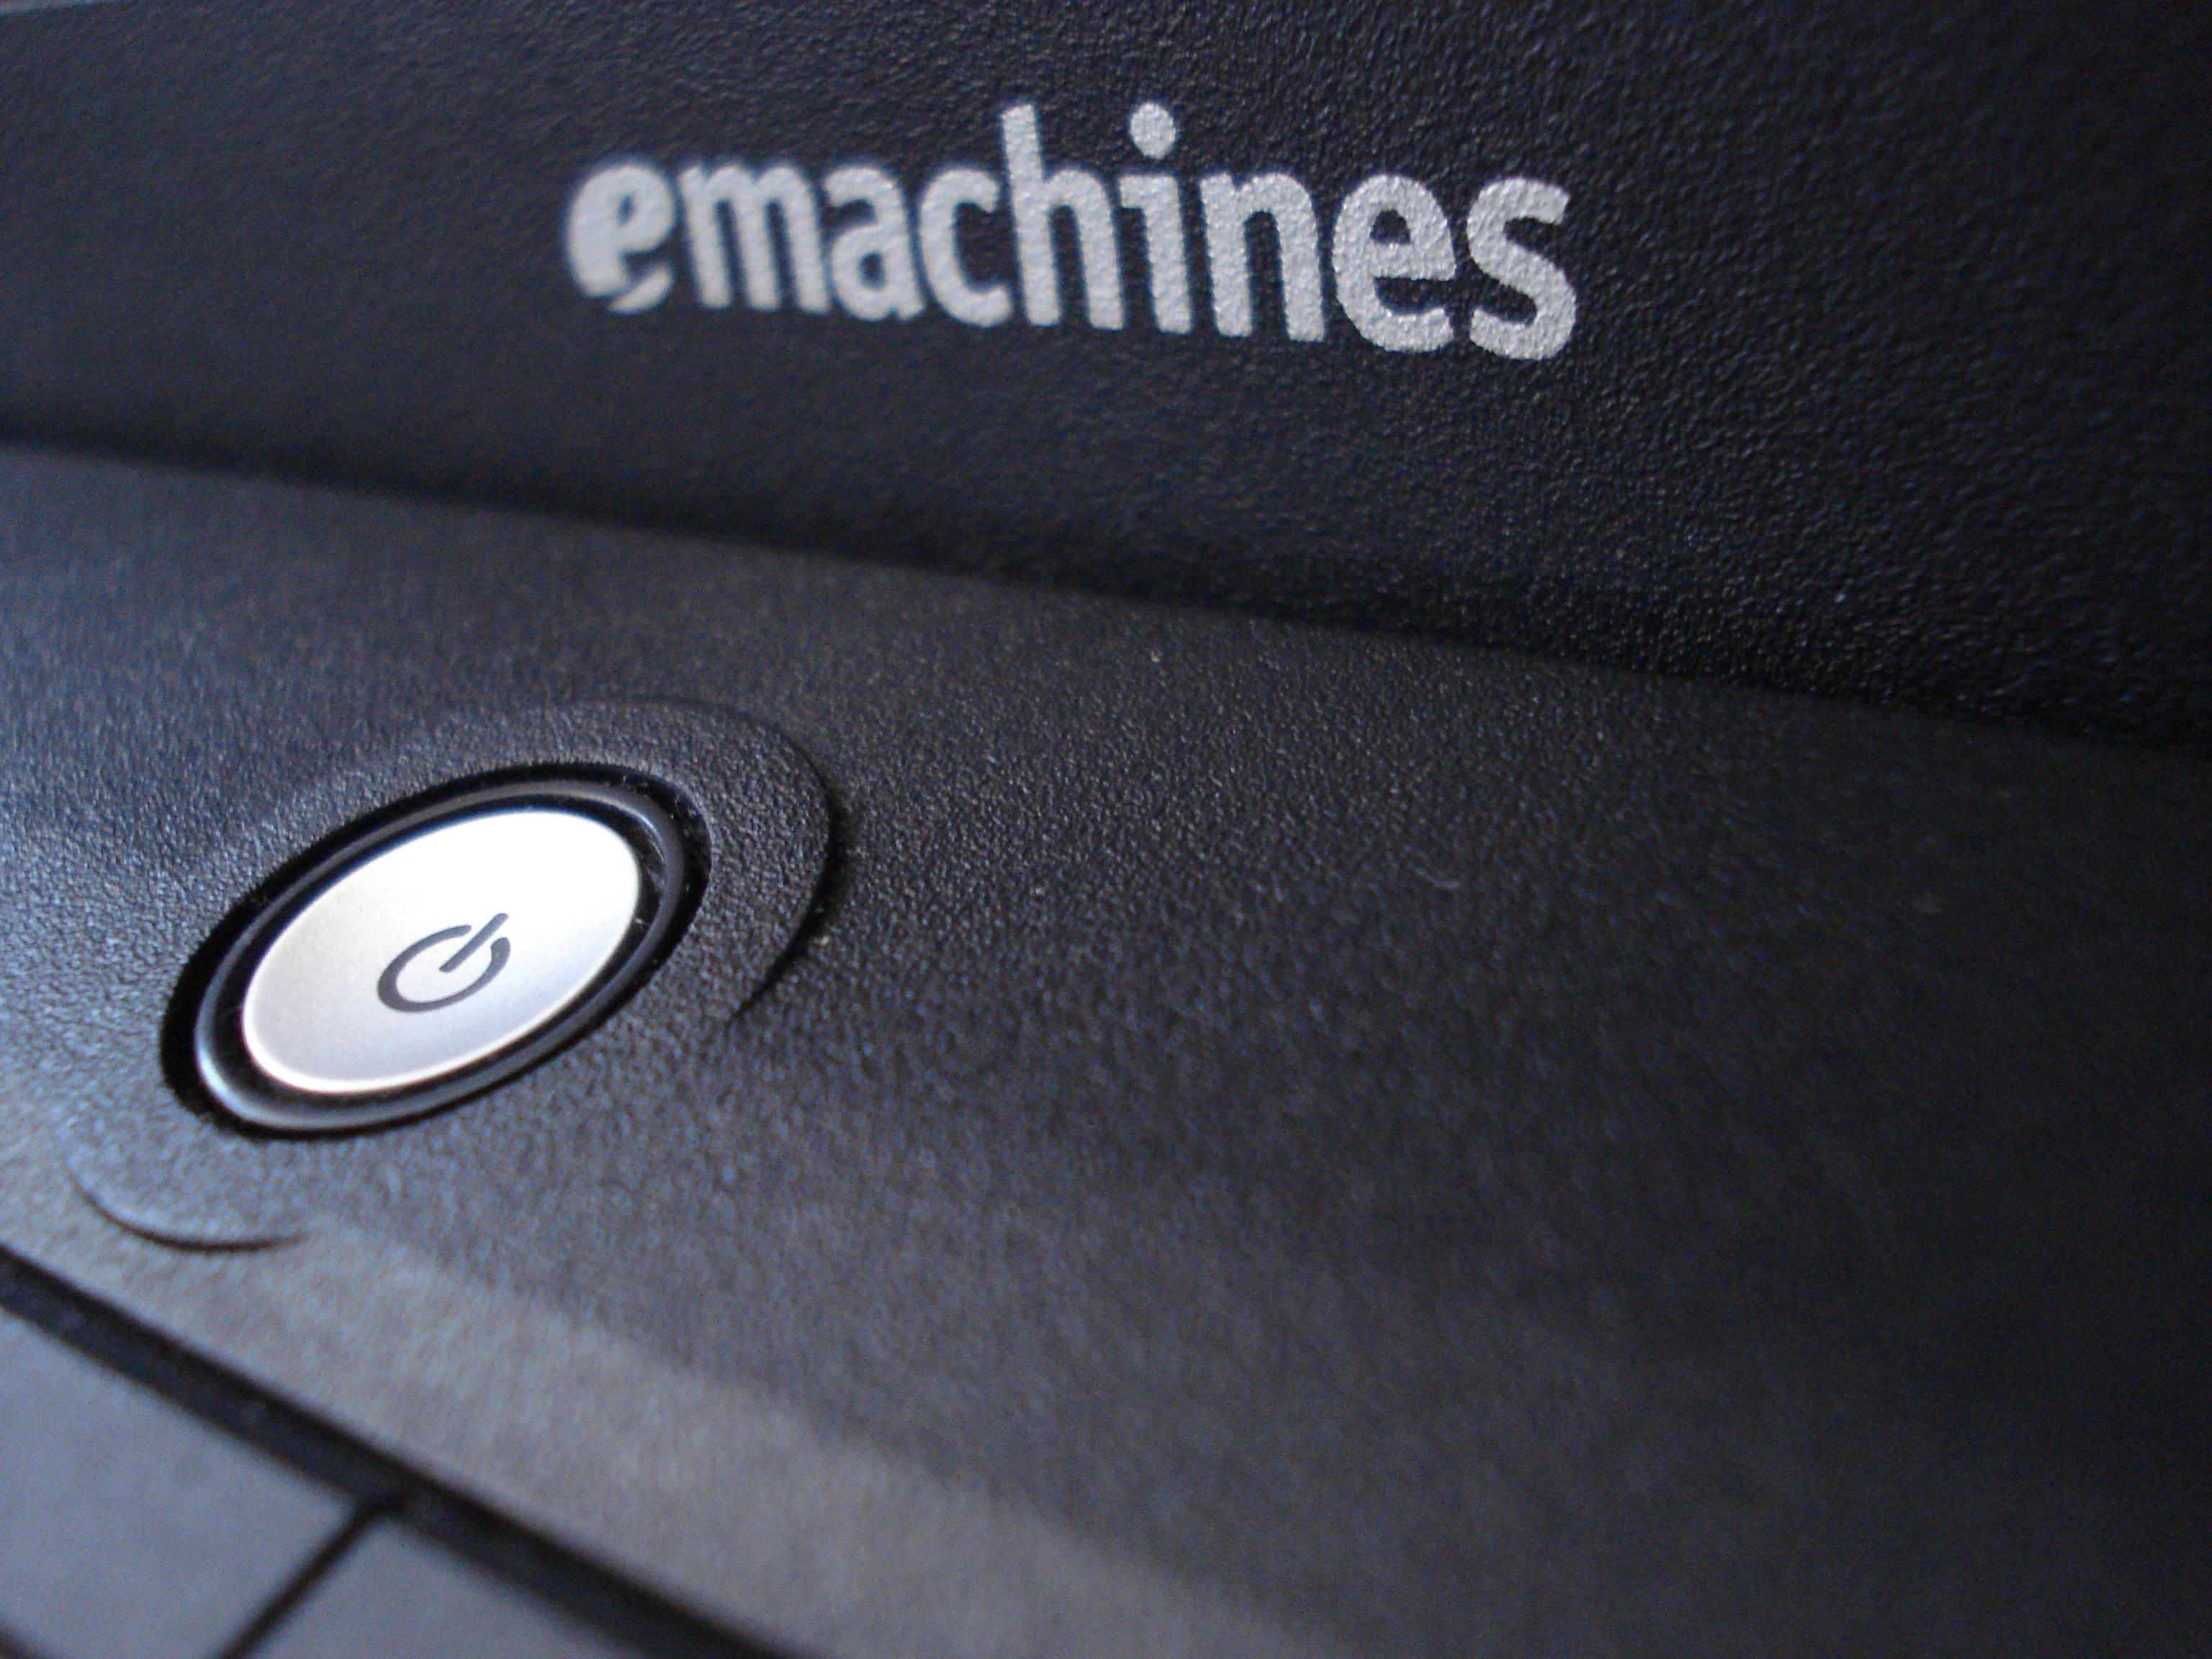 emachines wallpapers wallpaper cave